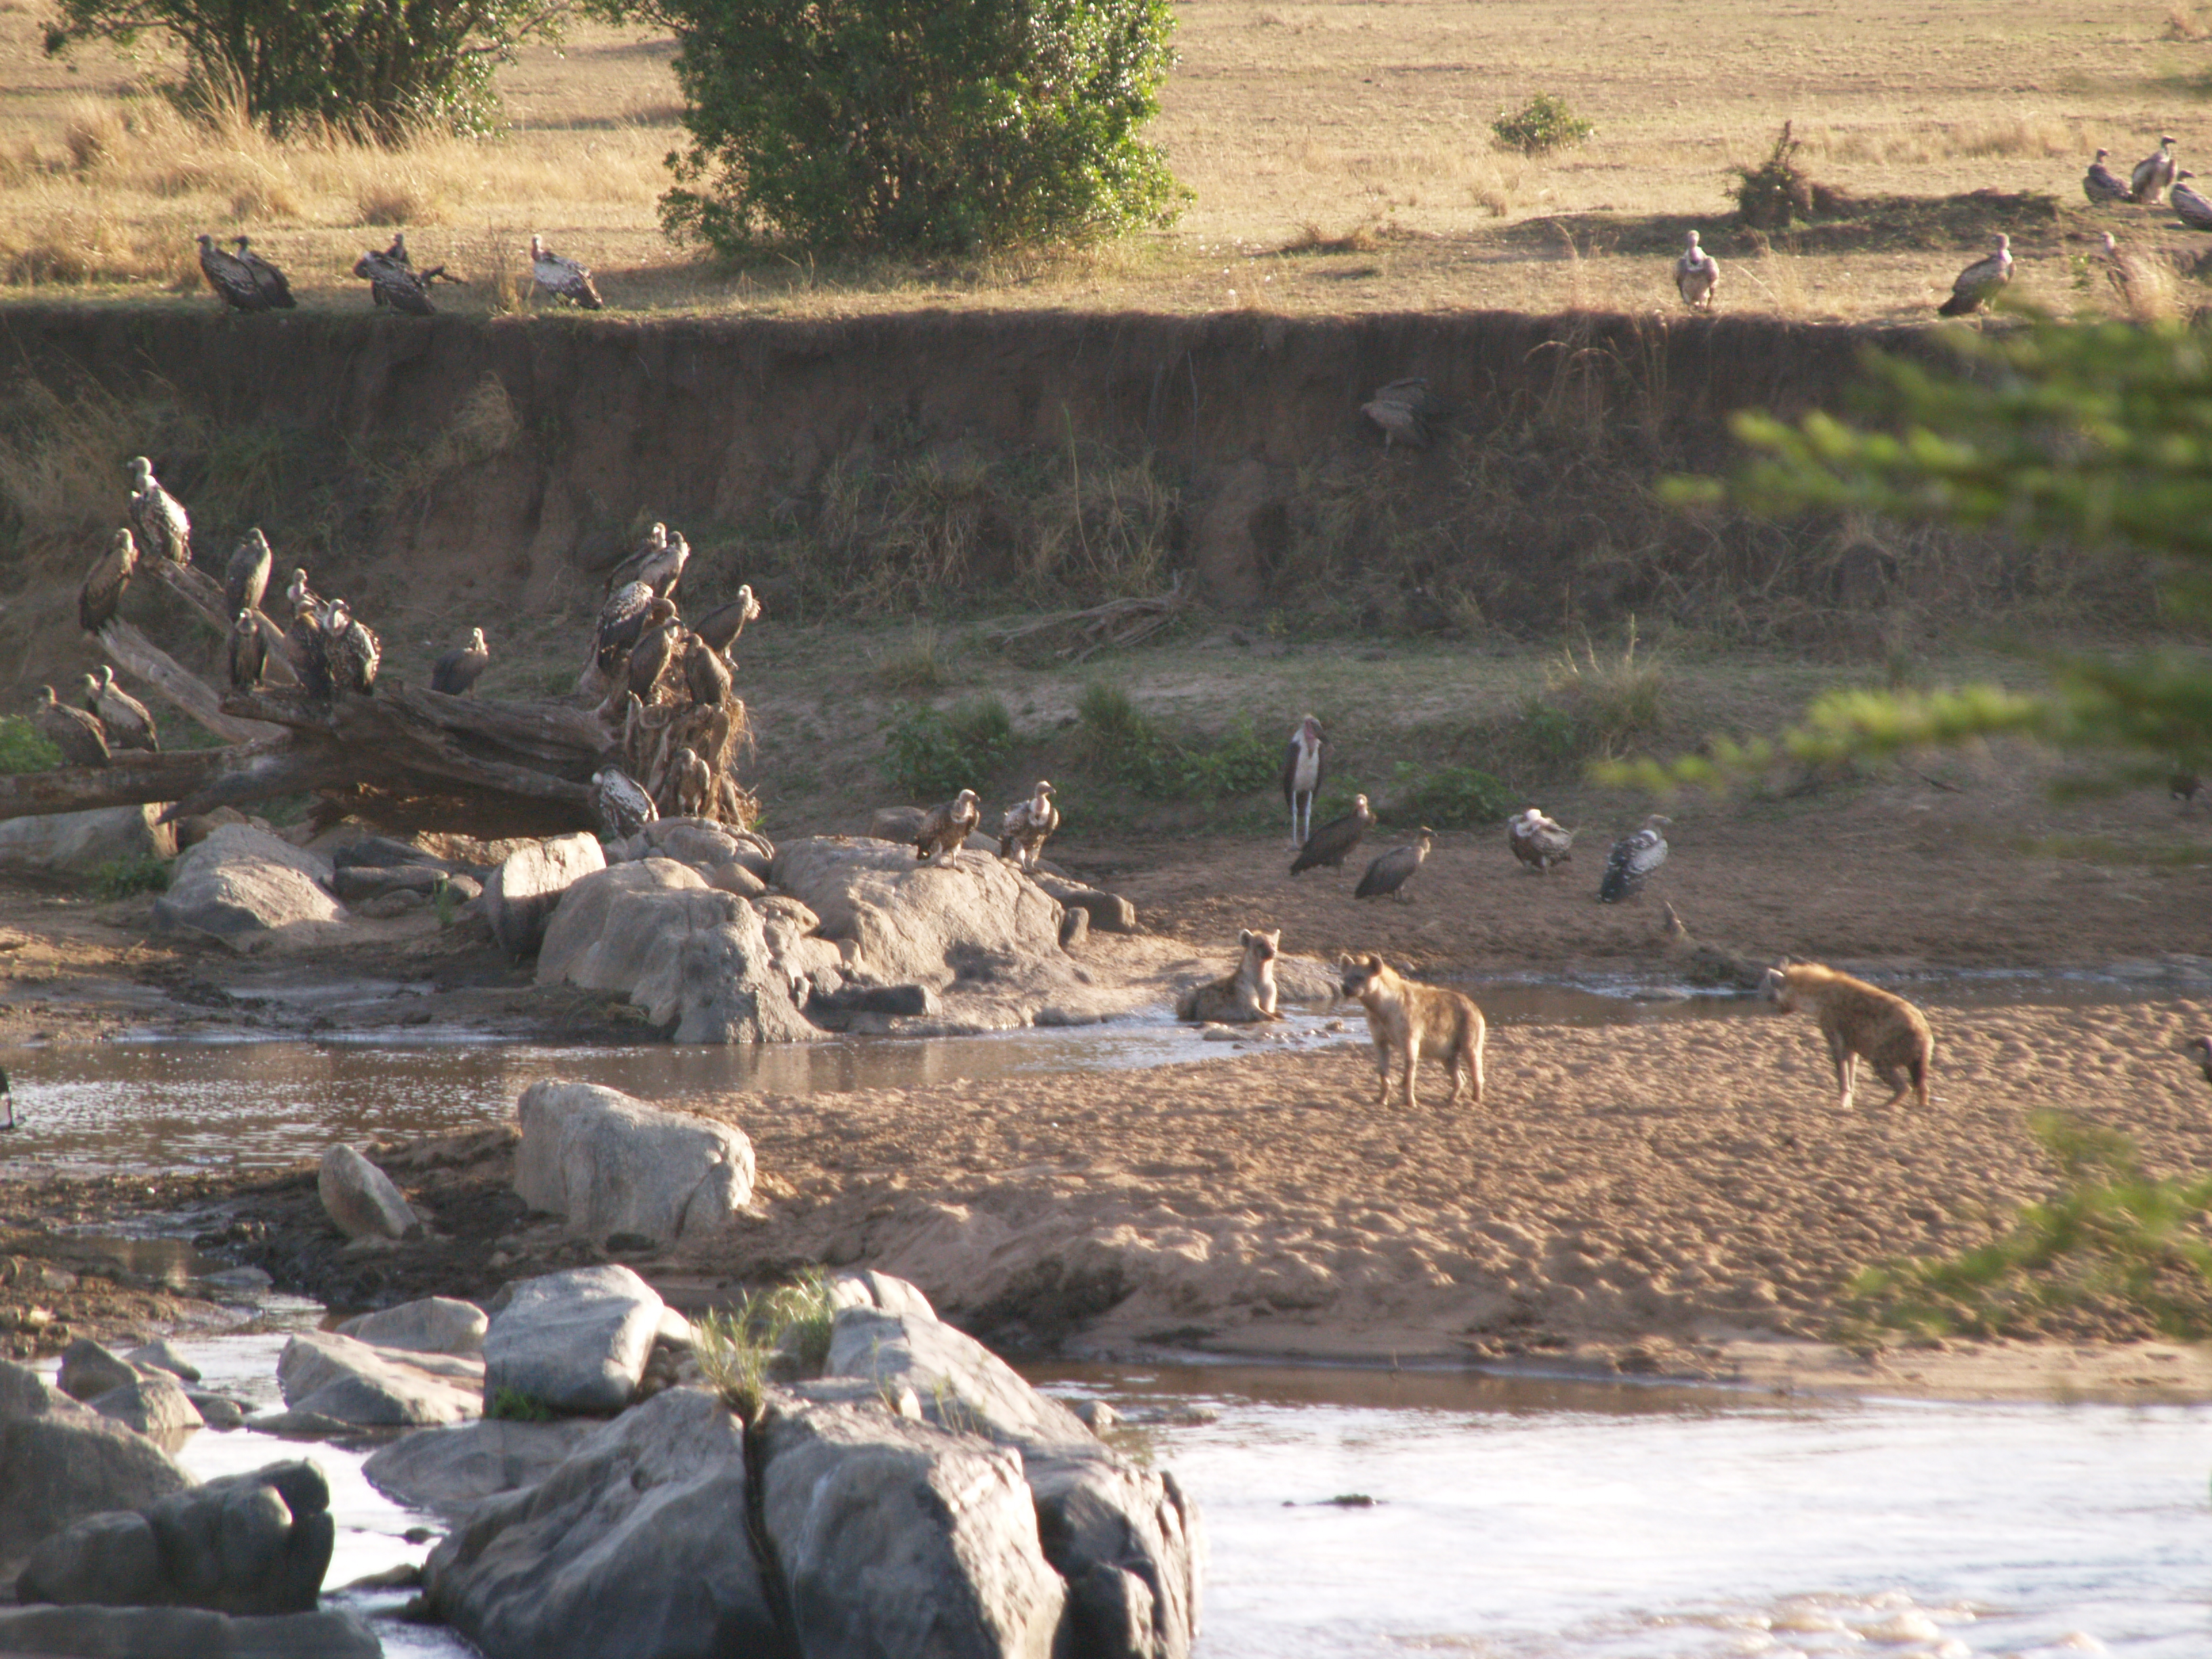 on the Mara River, the scavngers resting after feeding on the wildebeest